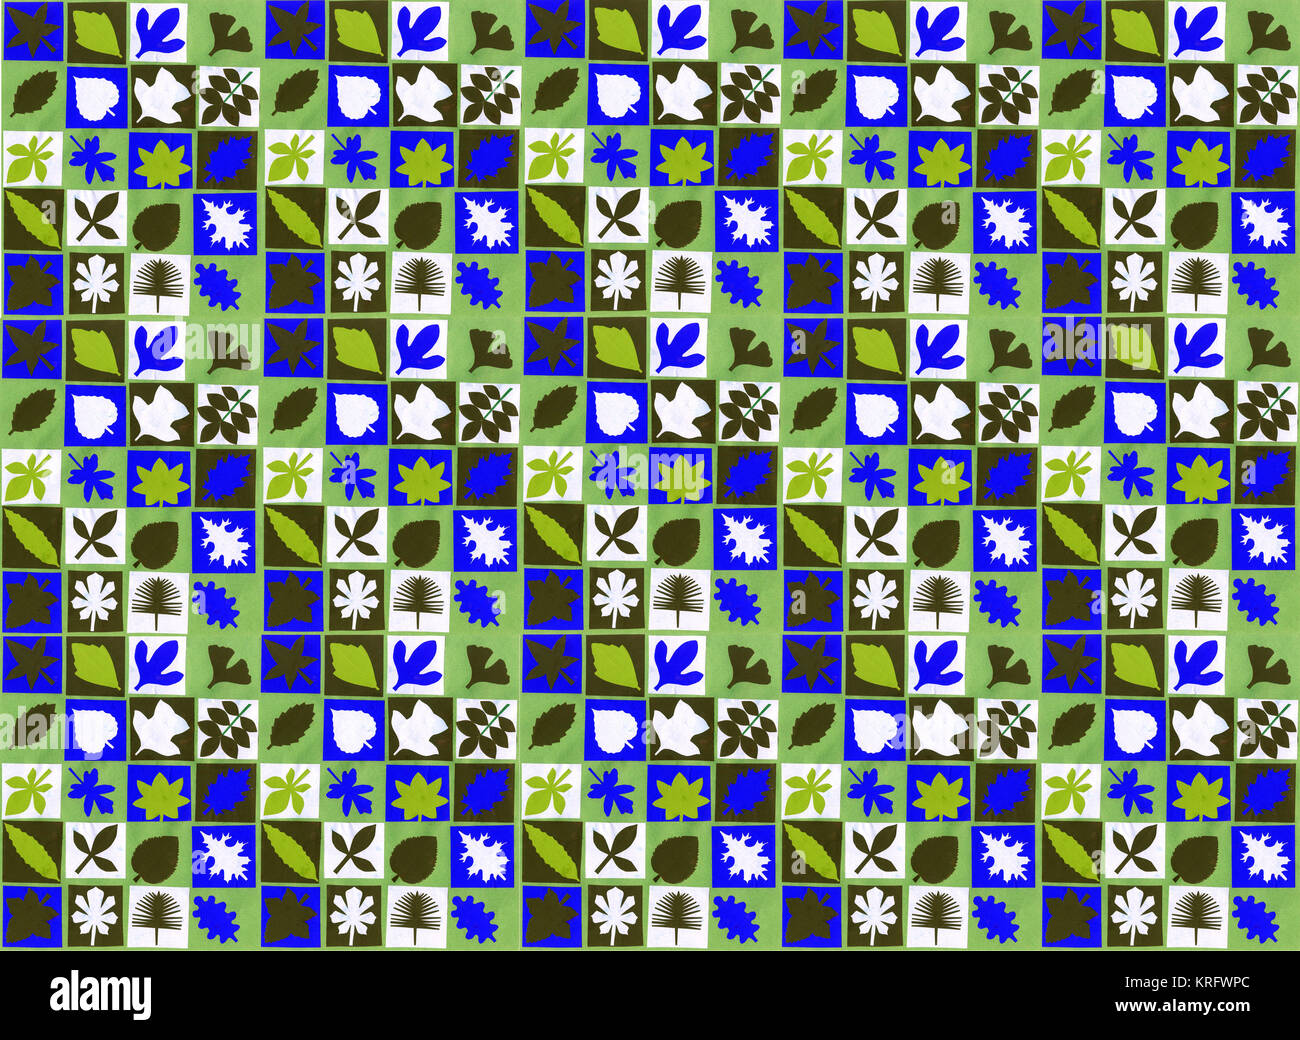 Wrapping paper or wallpaper design -- squares with leaf shapes, in black, white, blue and green.      Date: 2015 - Stock Image